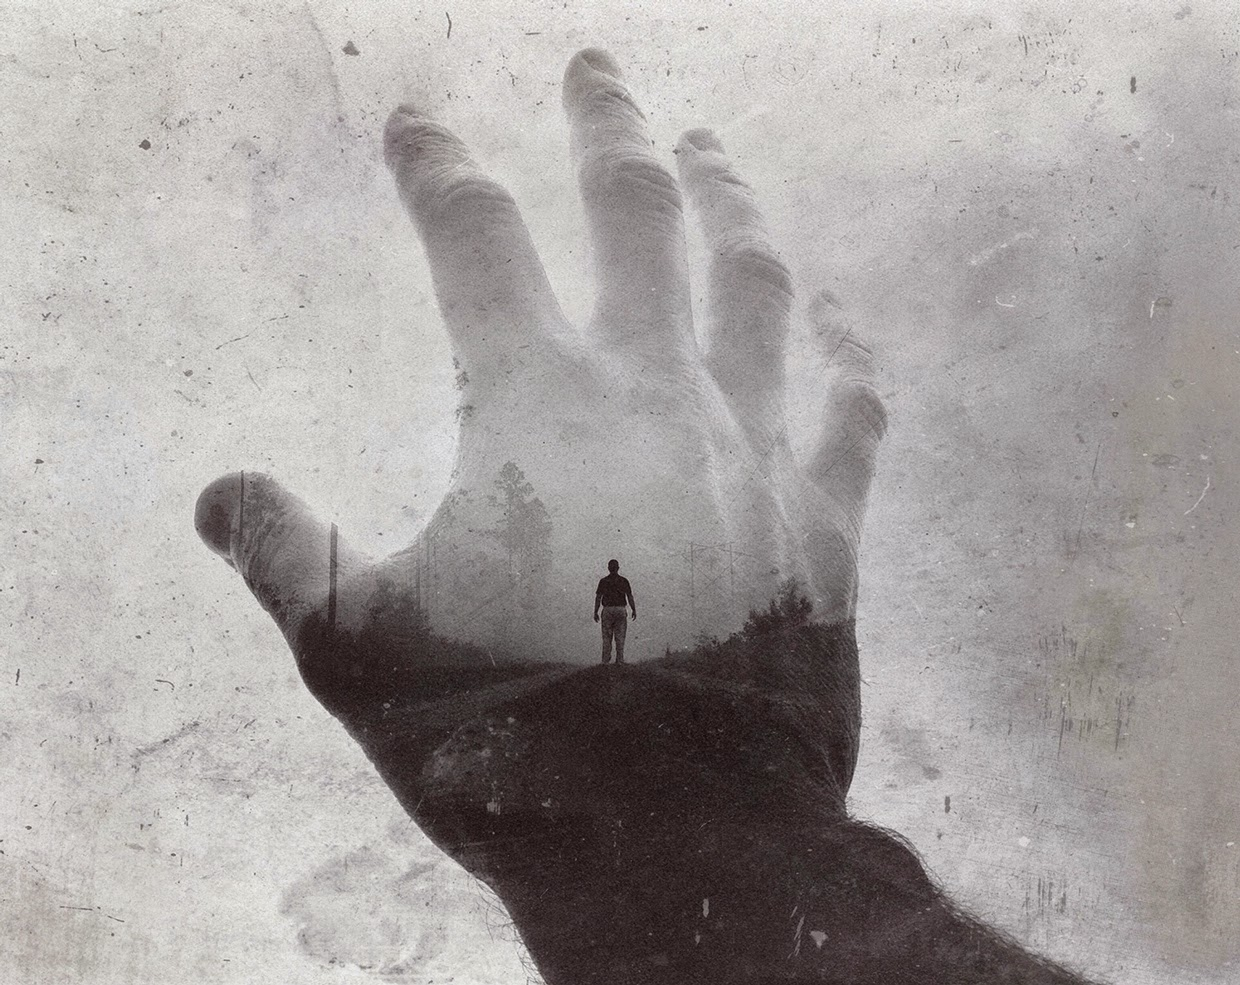 08-Brandon-Kidwell-Stories-in-Double-Exposure-Portrait-Photographs-www-designstack-co